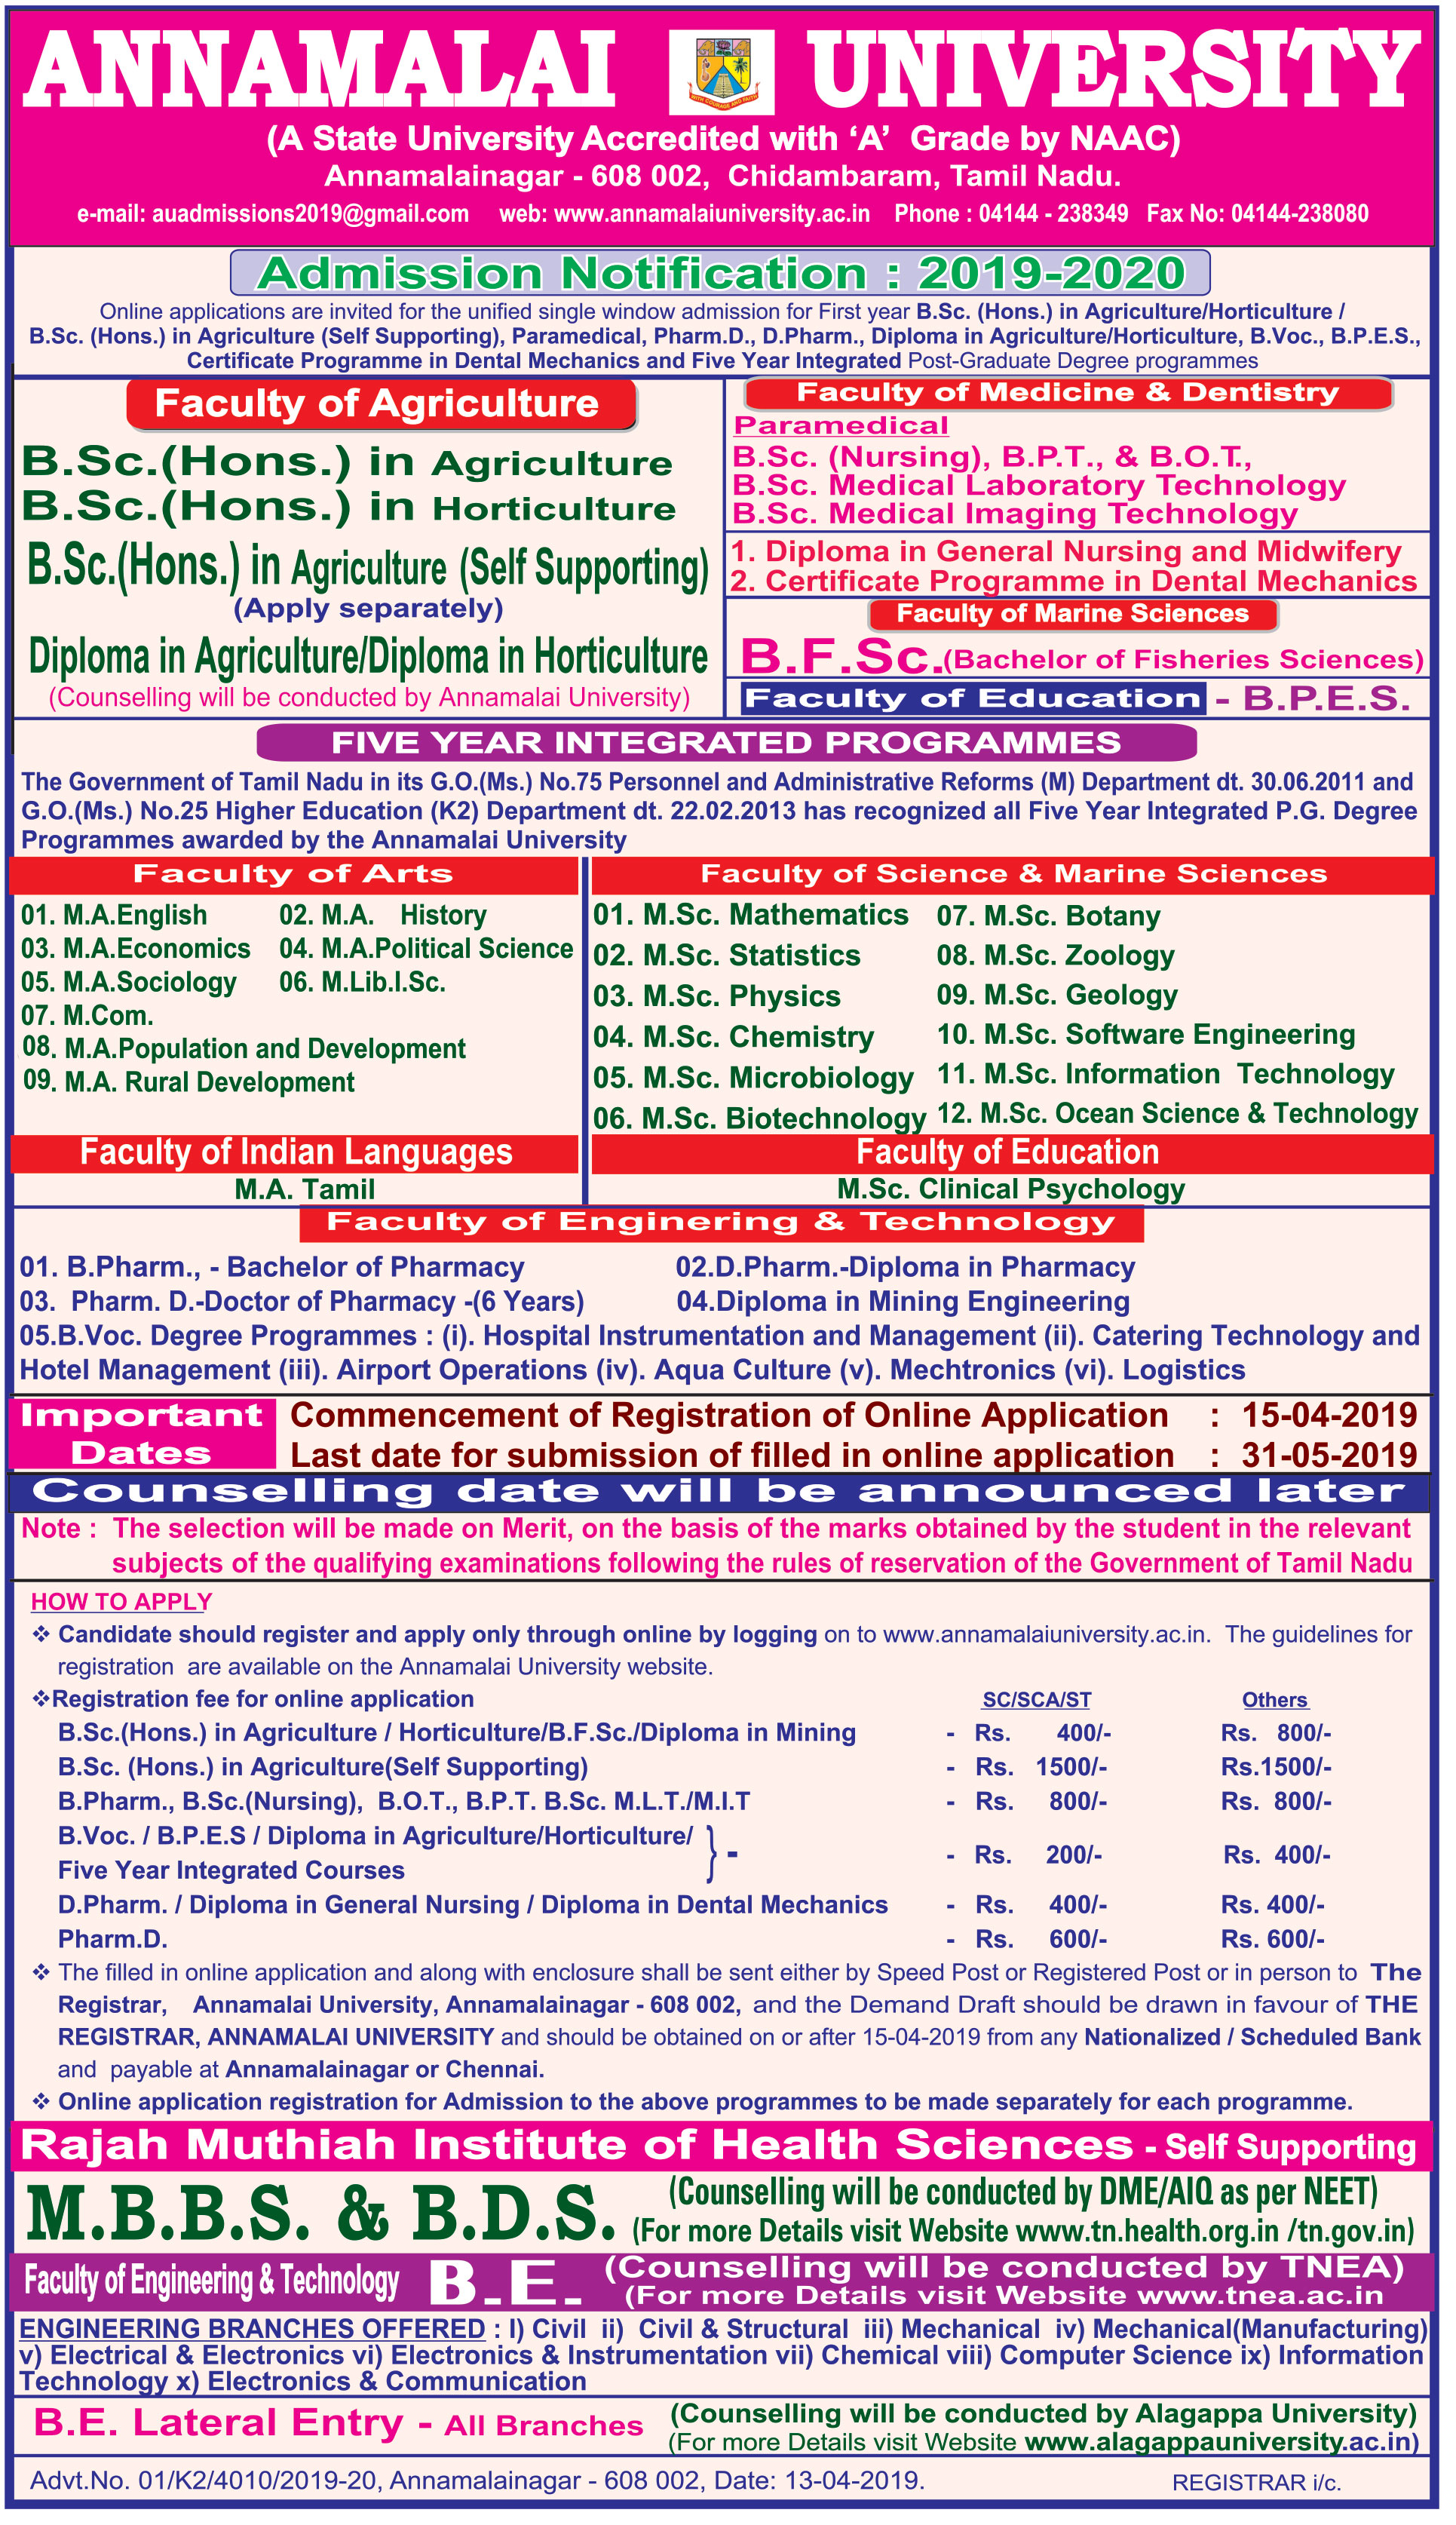 Notification - Admissions 2019-20